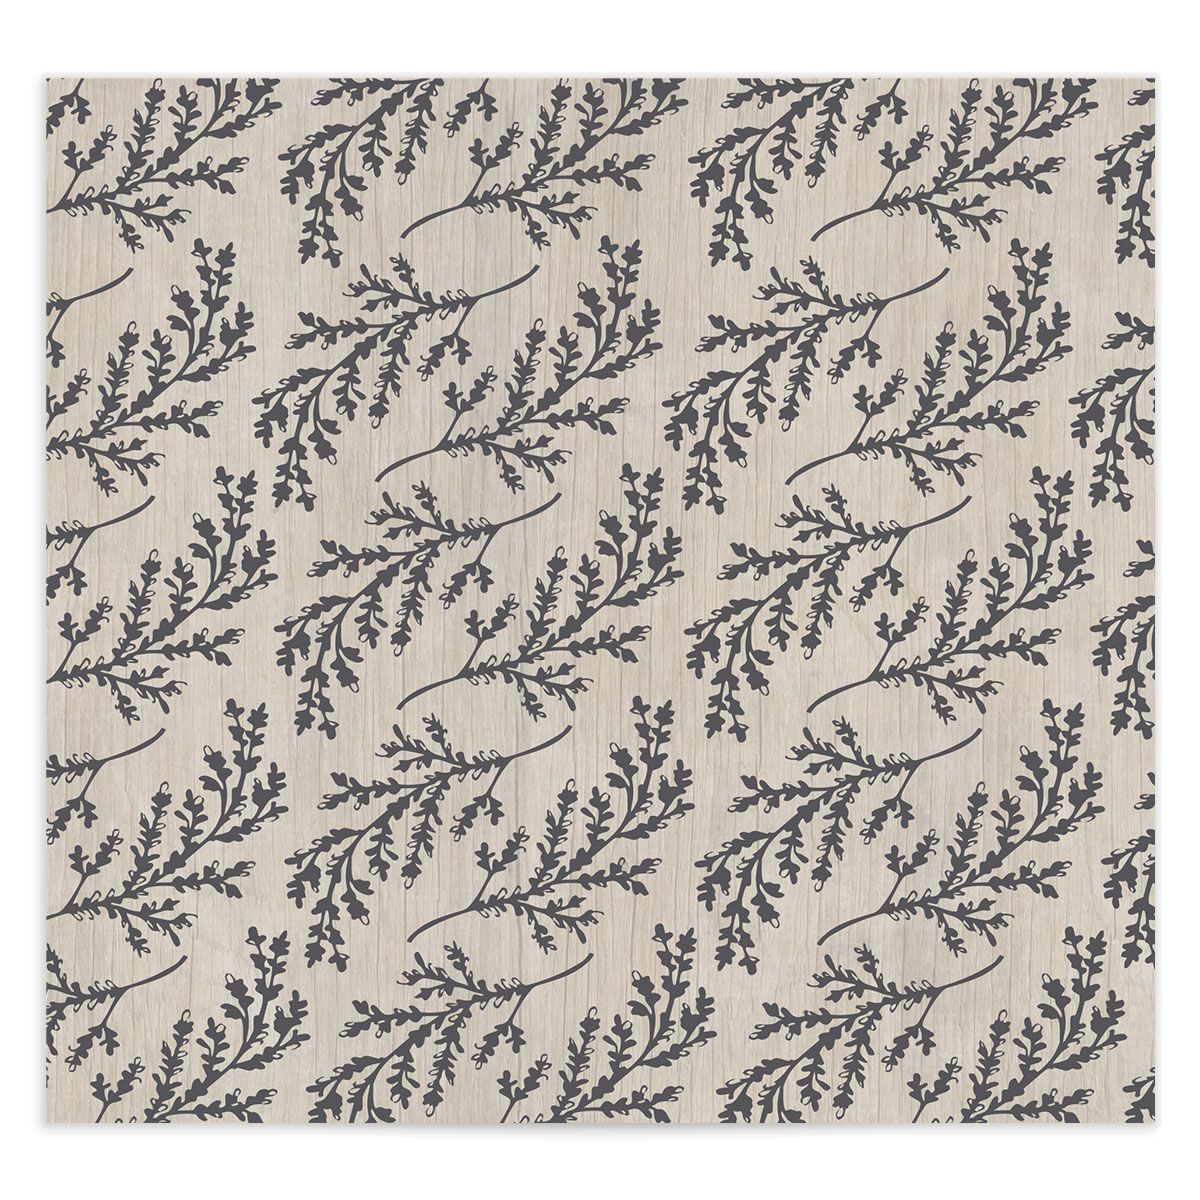 Rustic Chic envelope liner grey